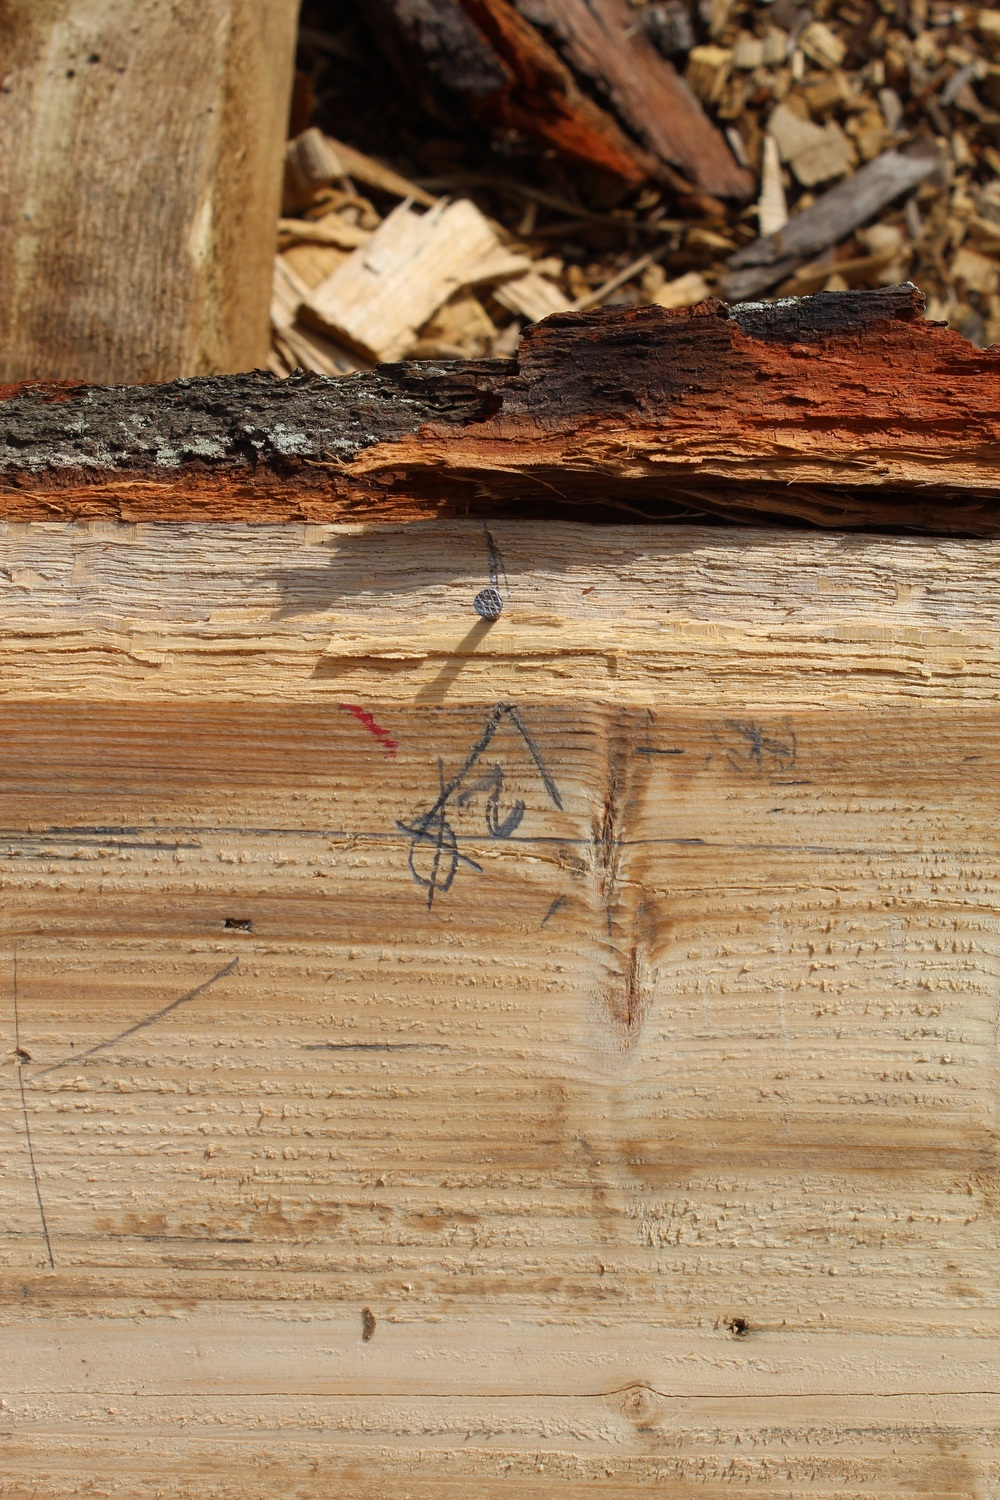 Distinctive marks laid out on the plank.